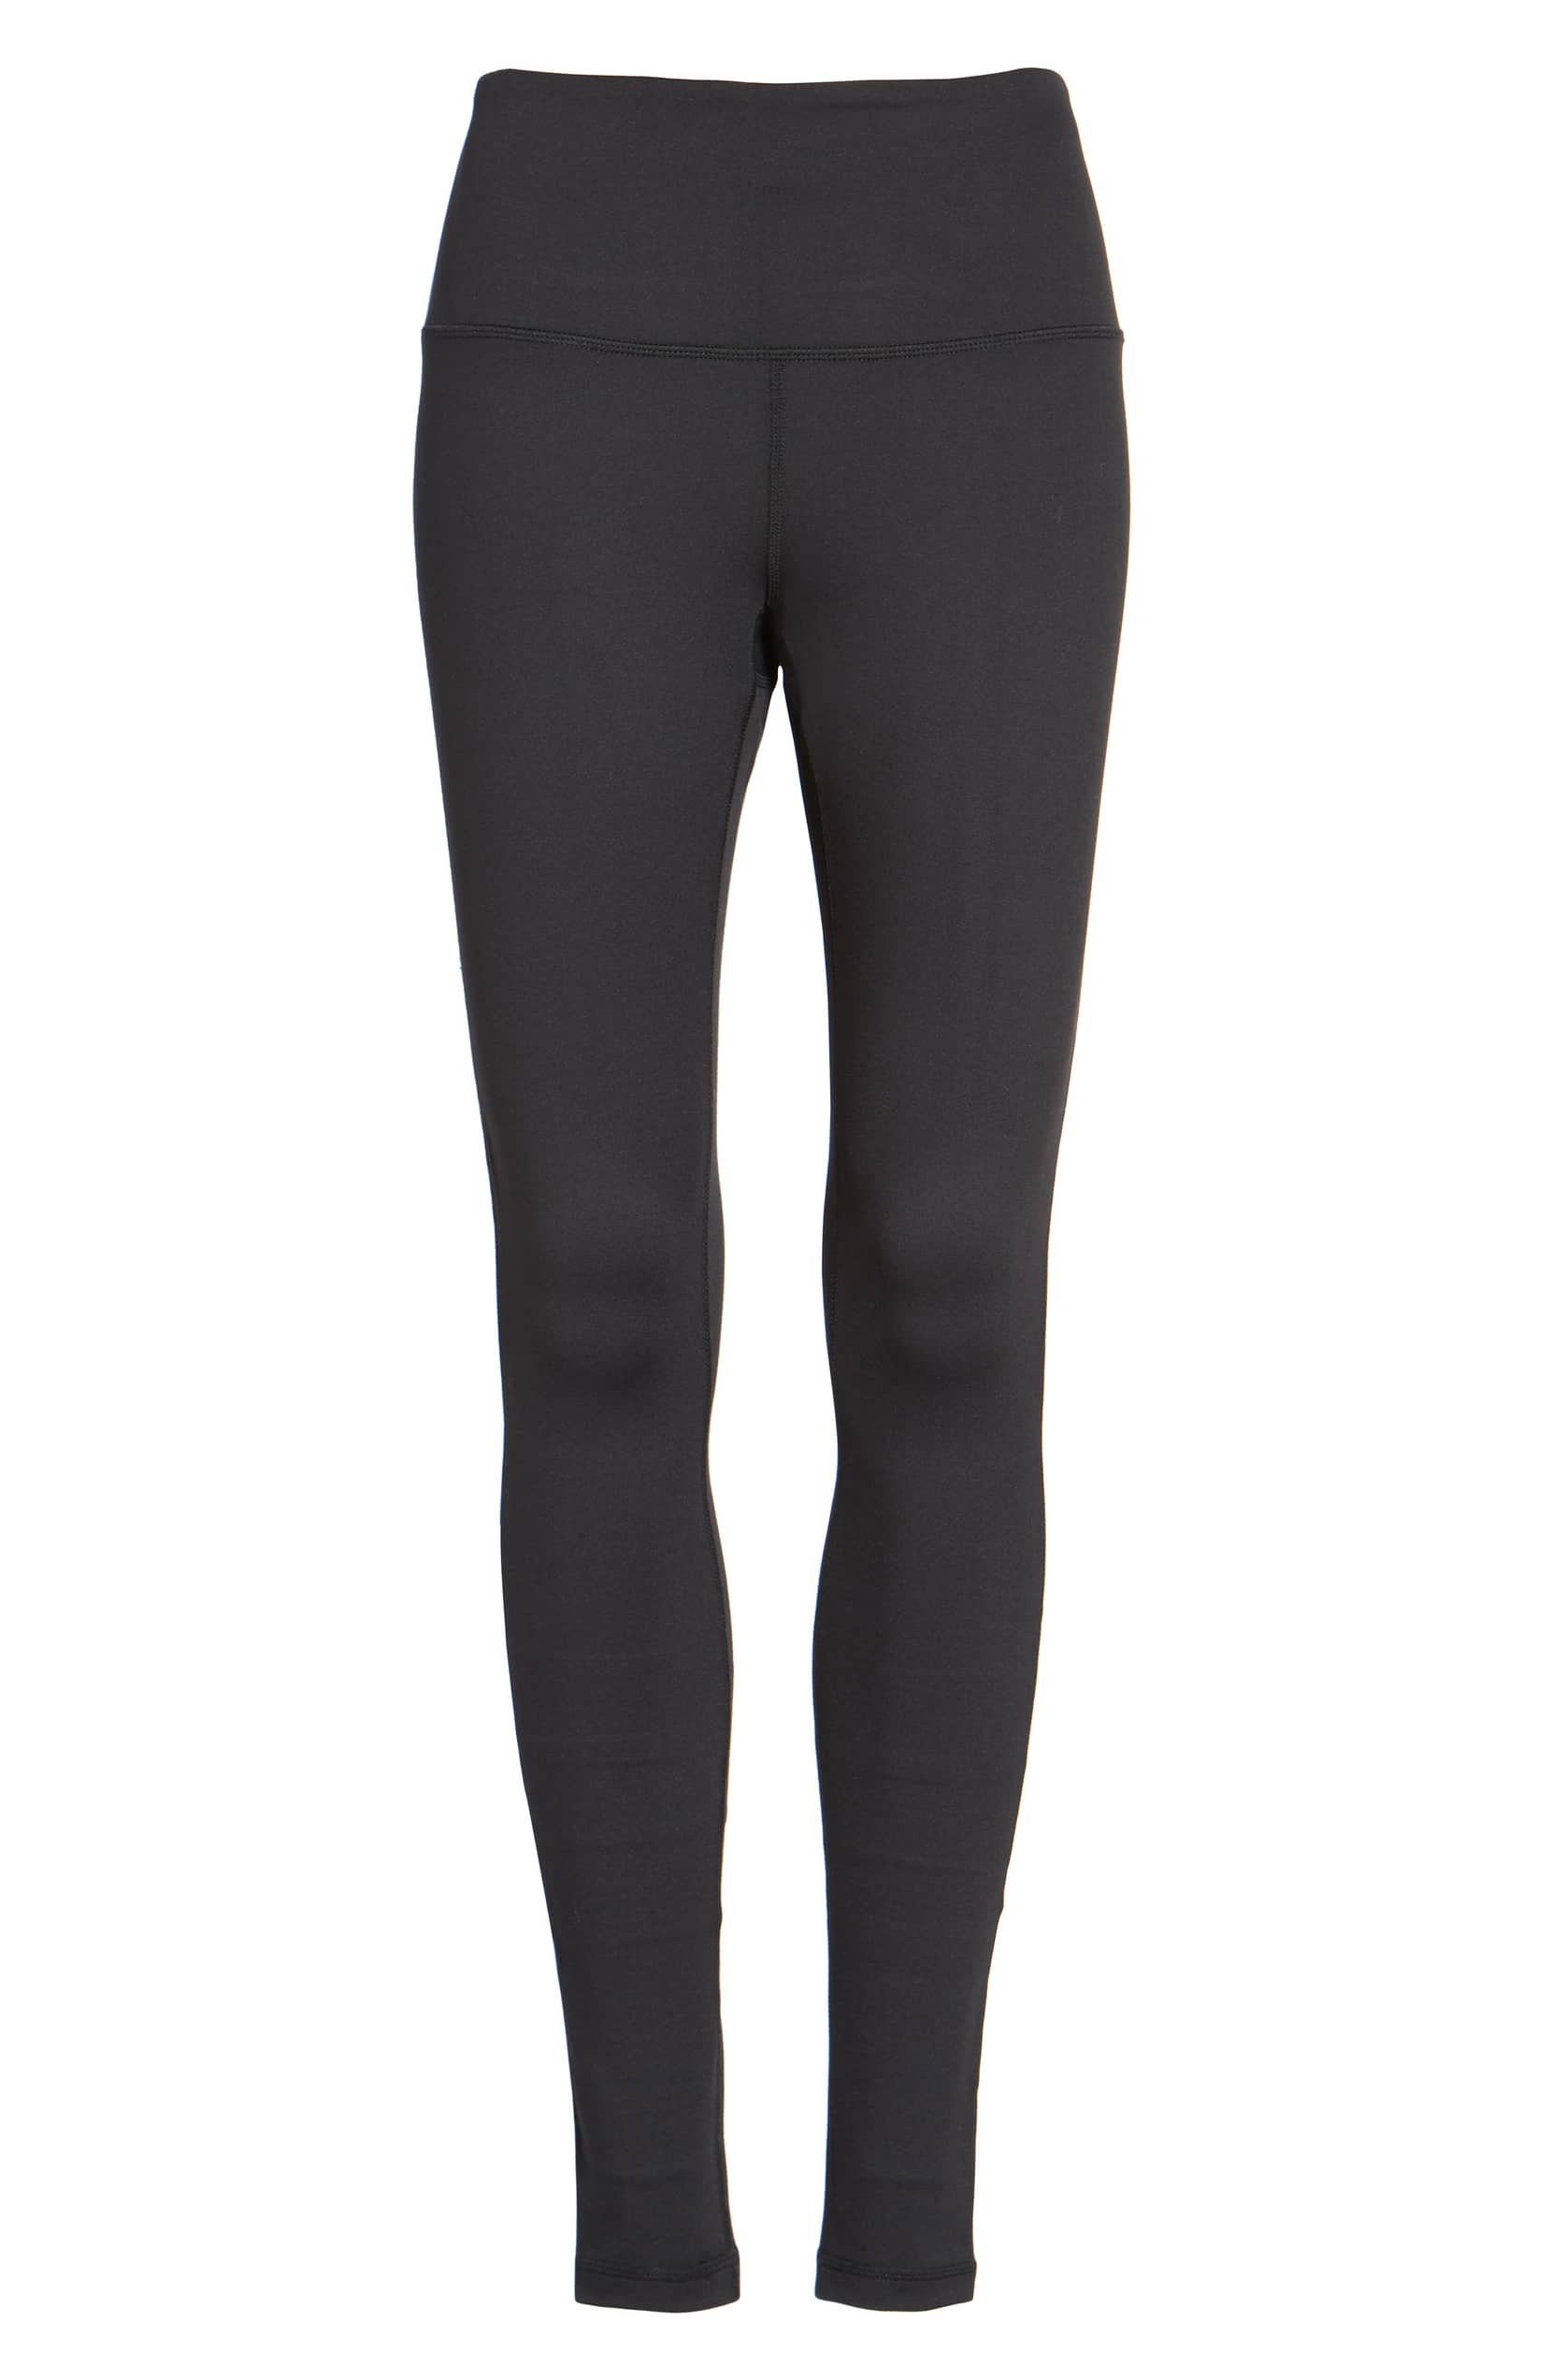 dd251f41891a1 Best Black Leggings - Reviews On Top Brands & Styles